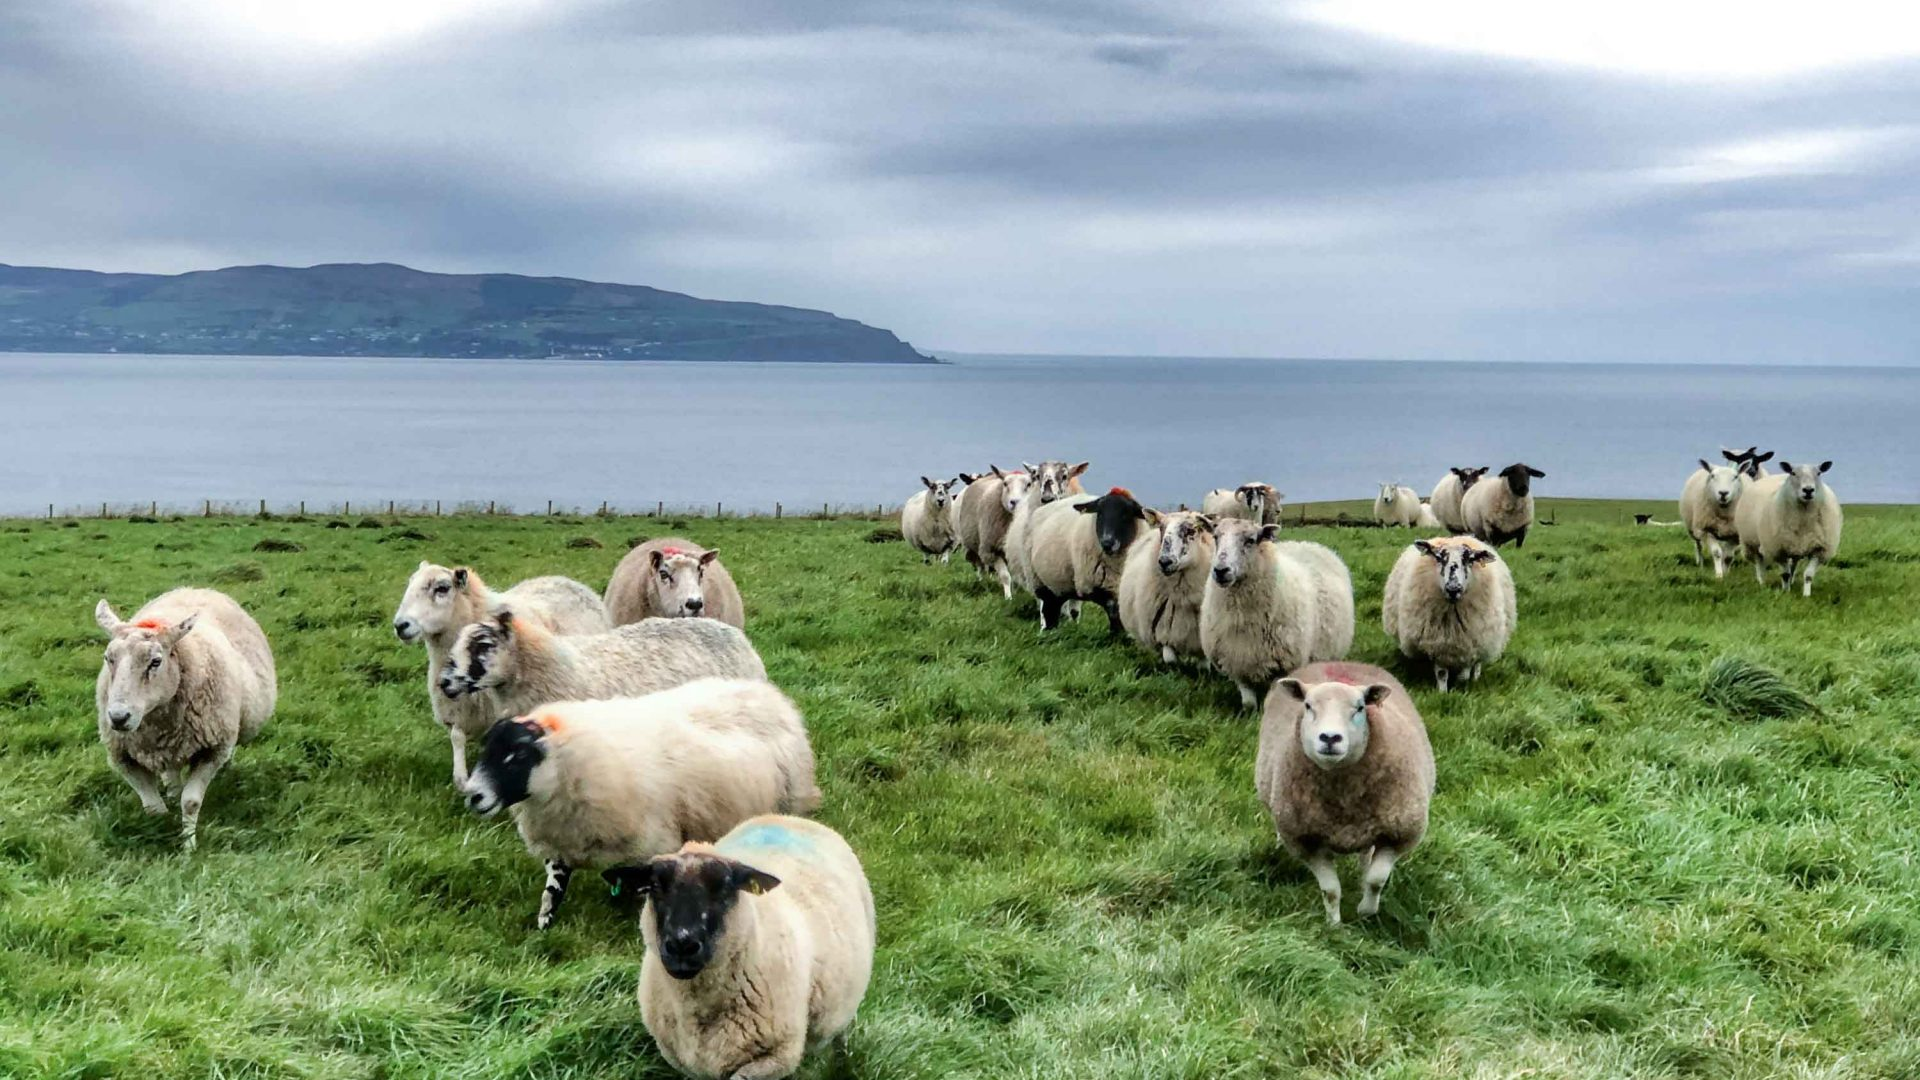 Sheep on the north coast of Northern Ireland.